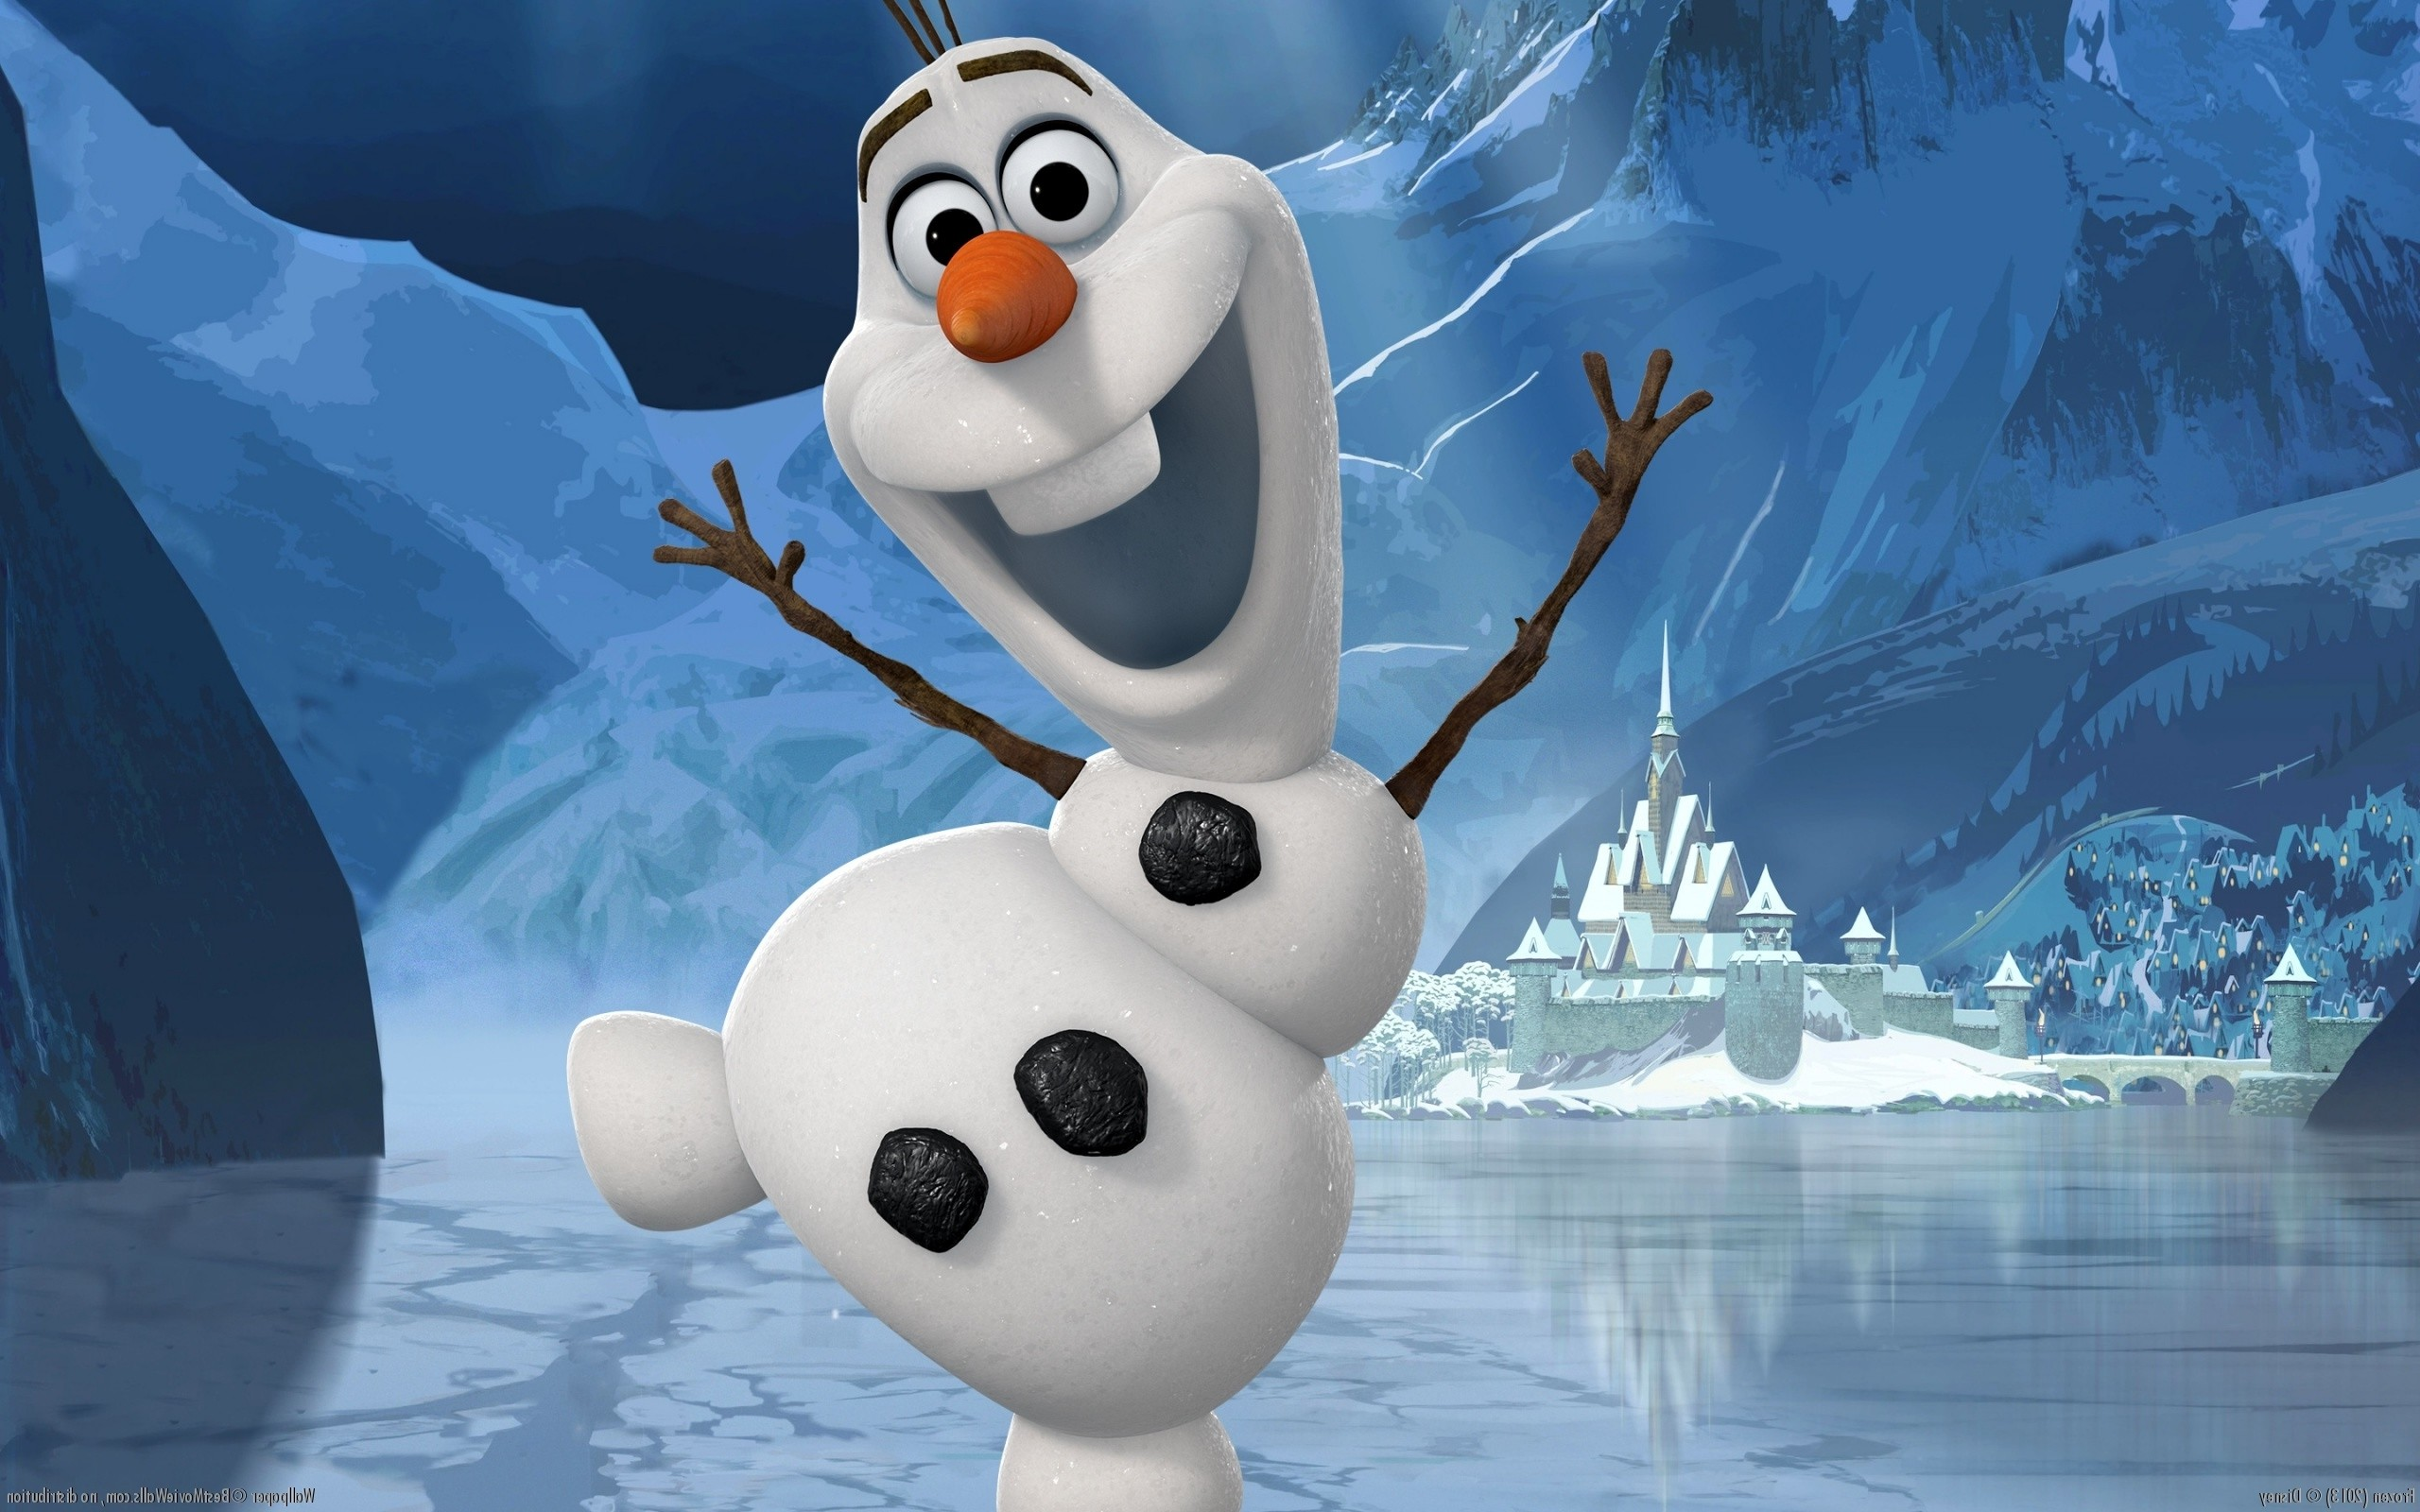 Cute Cartoon Hd Wallpapers Free Download Disney Olaf Wallpaper 69 Images